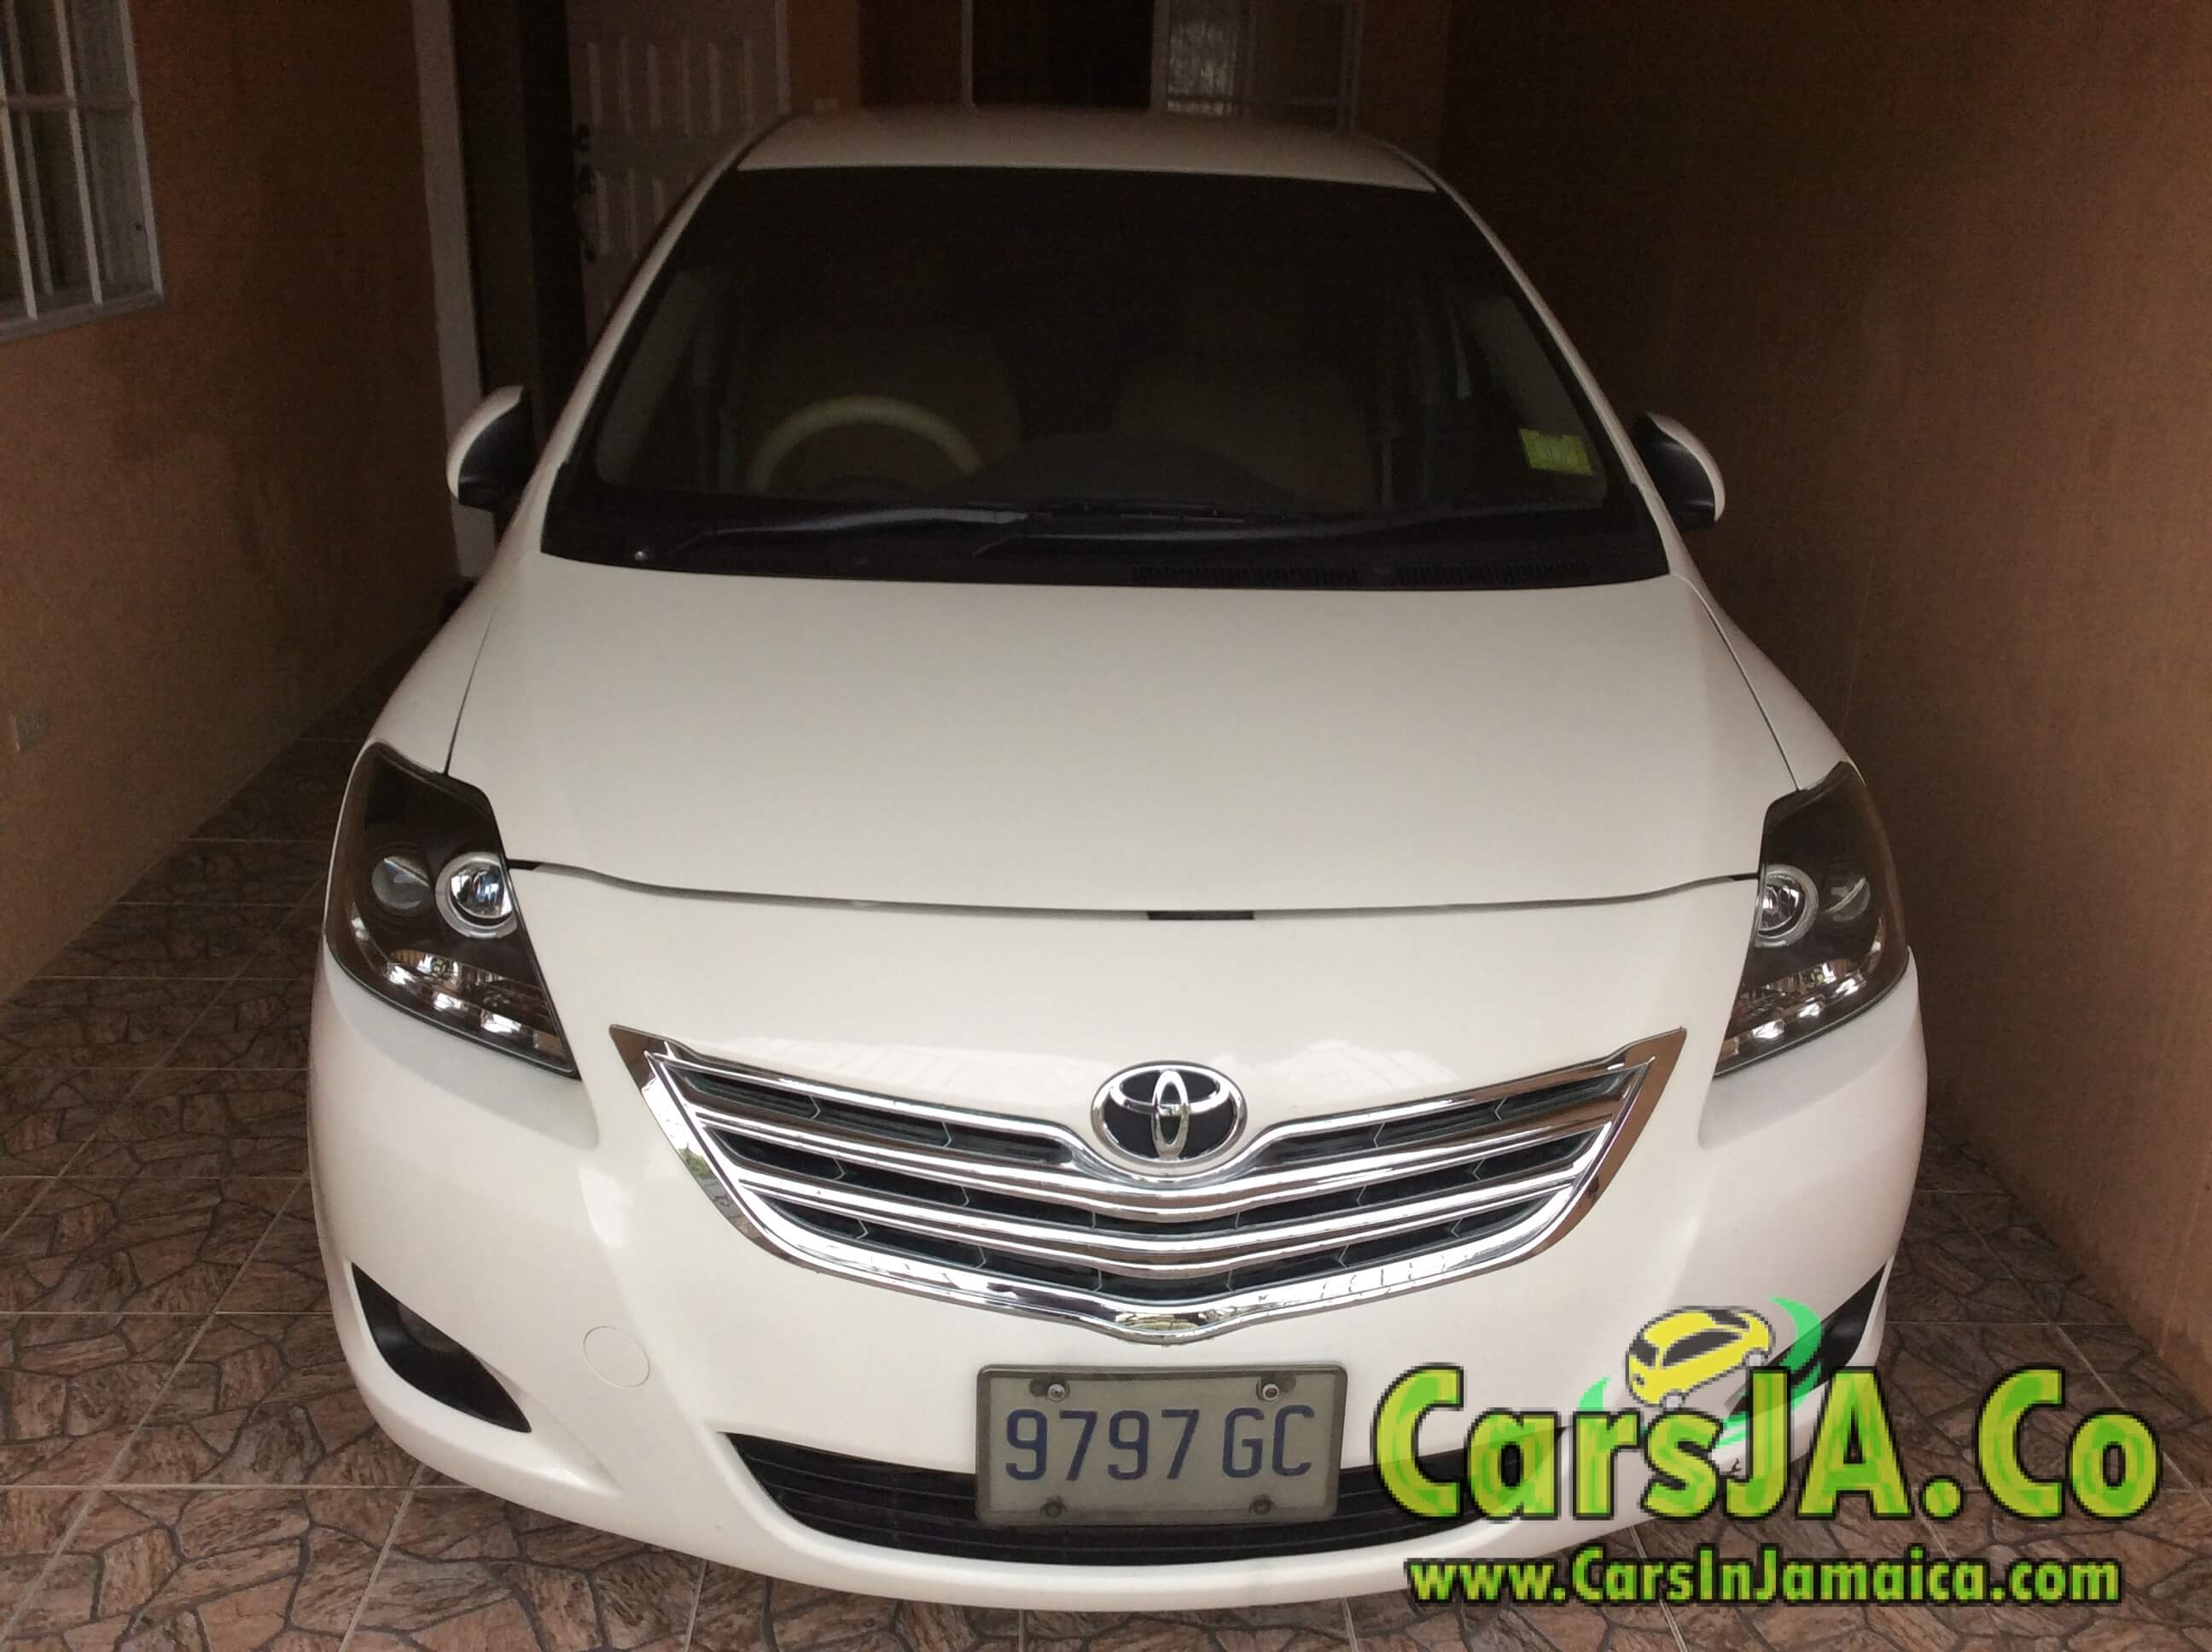 Toyota For Sale in Jamaica | CarsJa.Co